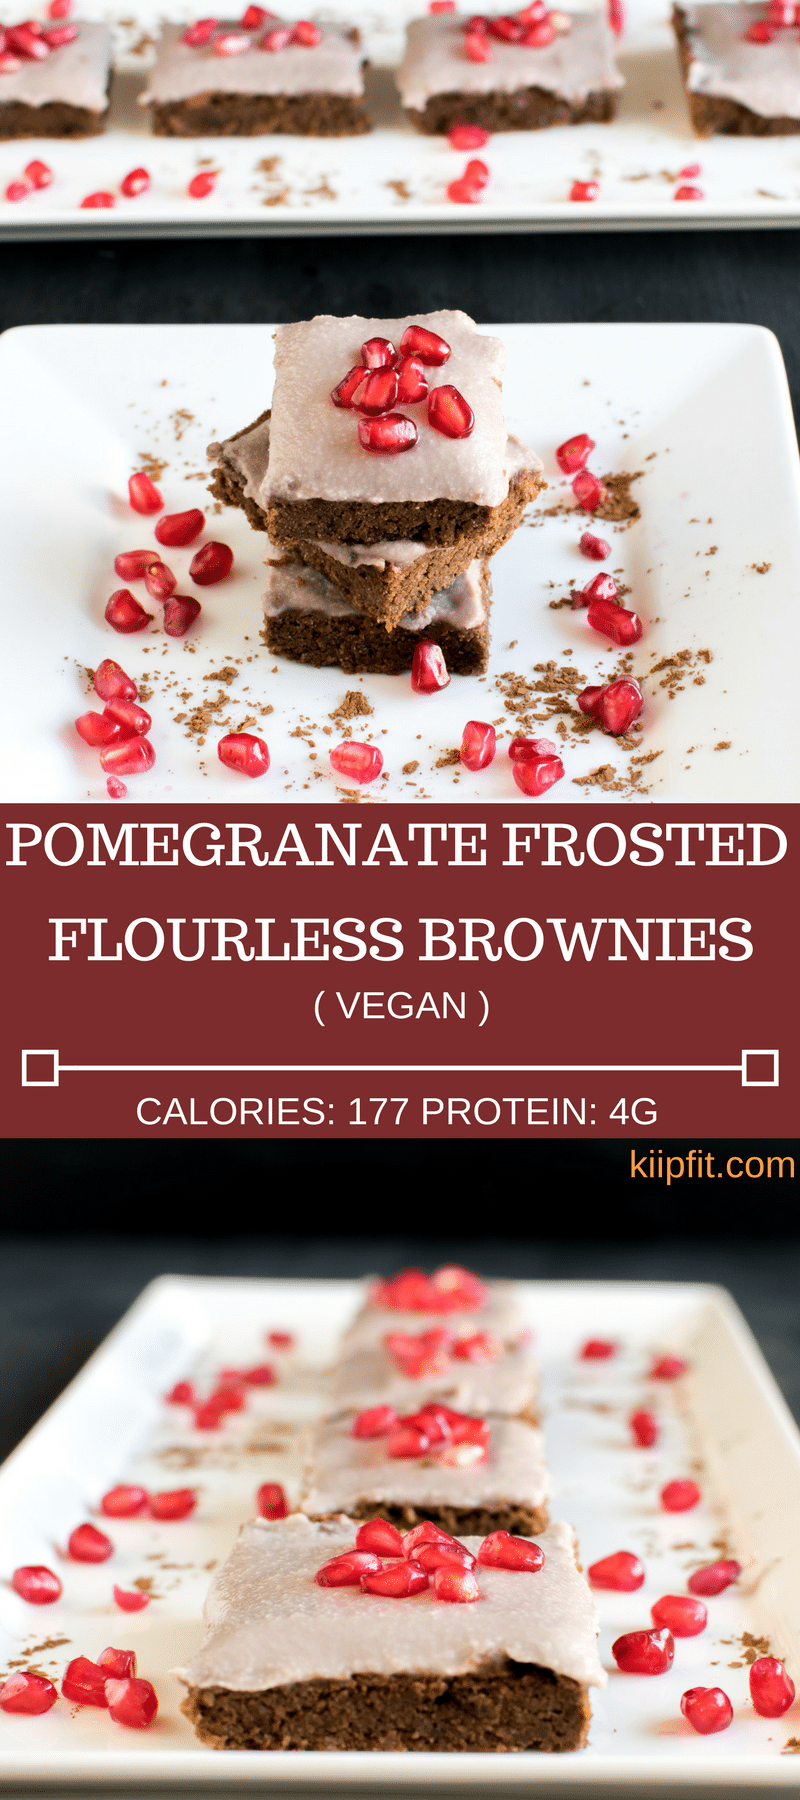 Pomegranate Frosted Flourless Brownies made with loads of love and care is packed with deliciousness. The chewy texture of this flourless brownies and freshly prepared pomegranate frosting is simply outstanding. Once you bite on it I bet you cannot stop until you finish the entire batch. The combination of chocolate and fresh pomegranate kernels in itself is mind boggling. The flavors tantalize the taste buds with immense pleasure and satisfaction [ vegan + paleo + gf ] kiipfit.com